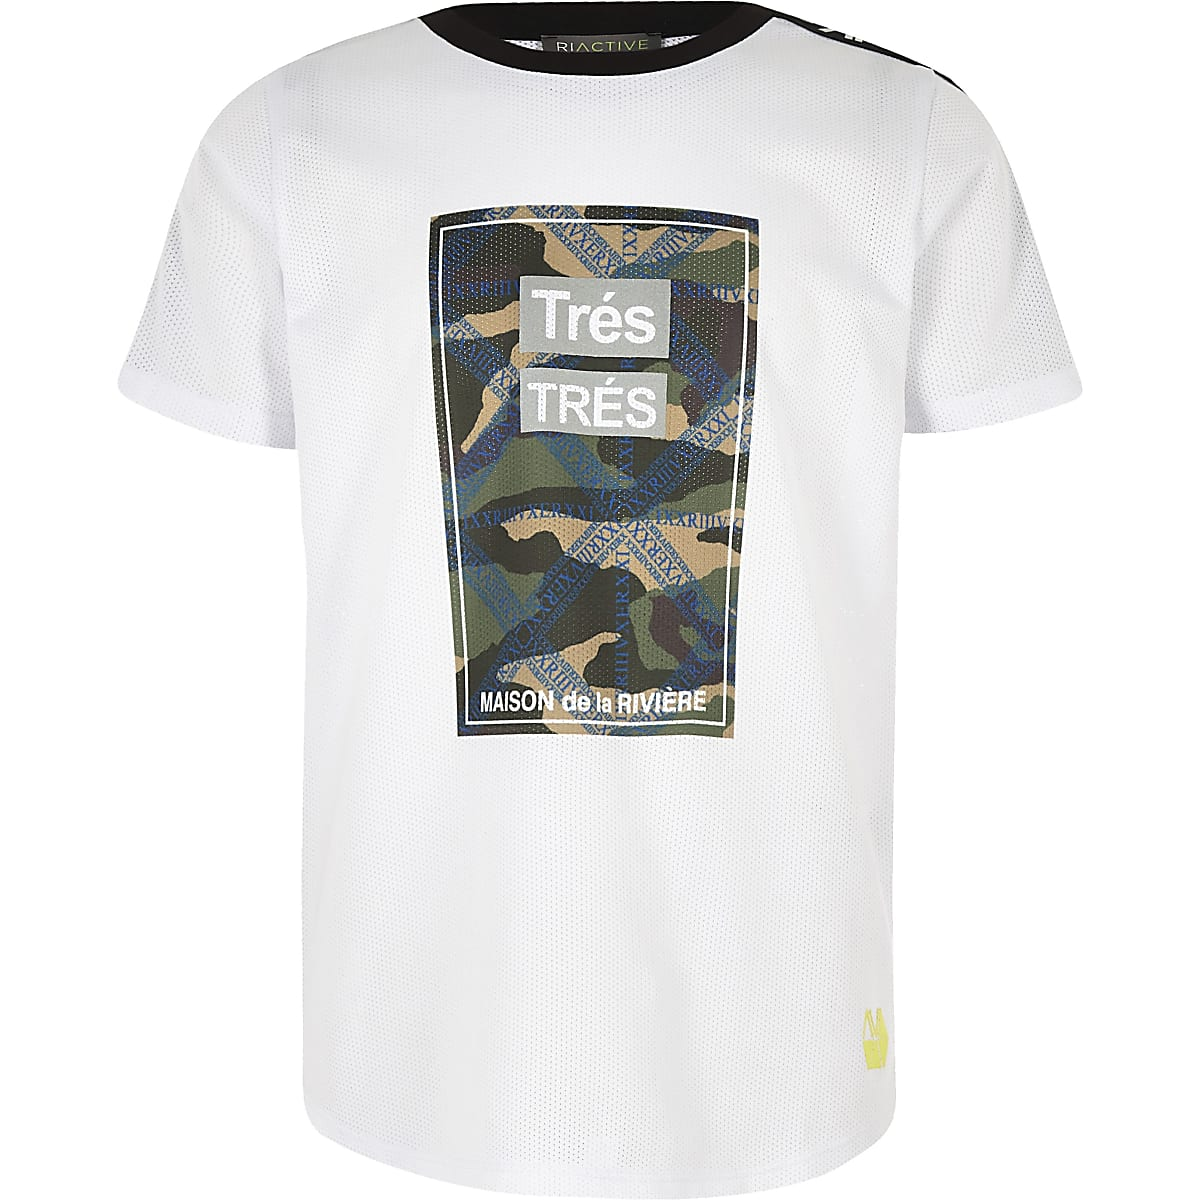 Boys RI Active white 'Tres' camo T-shirt